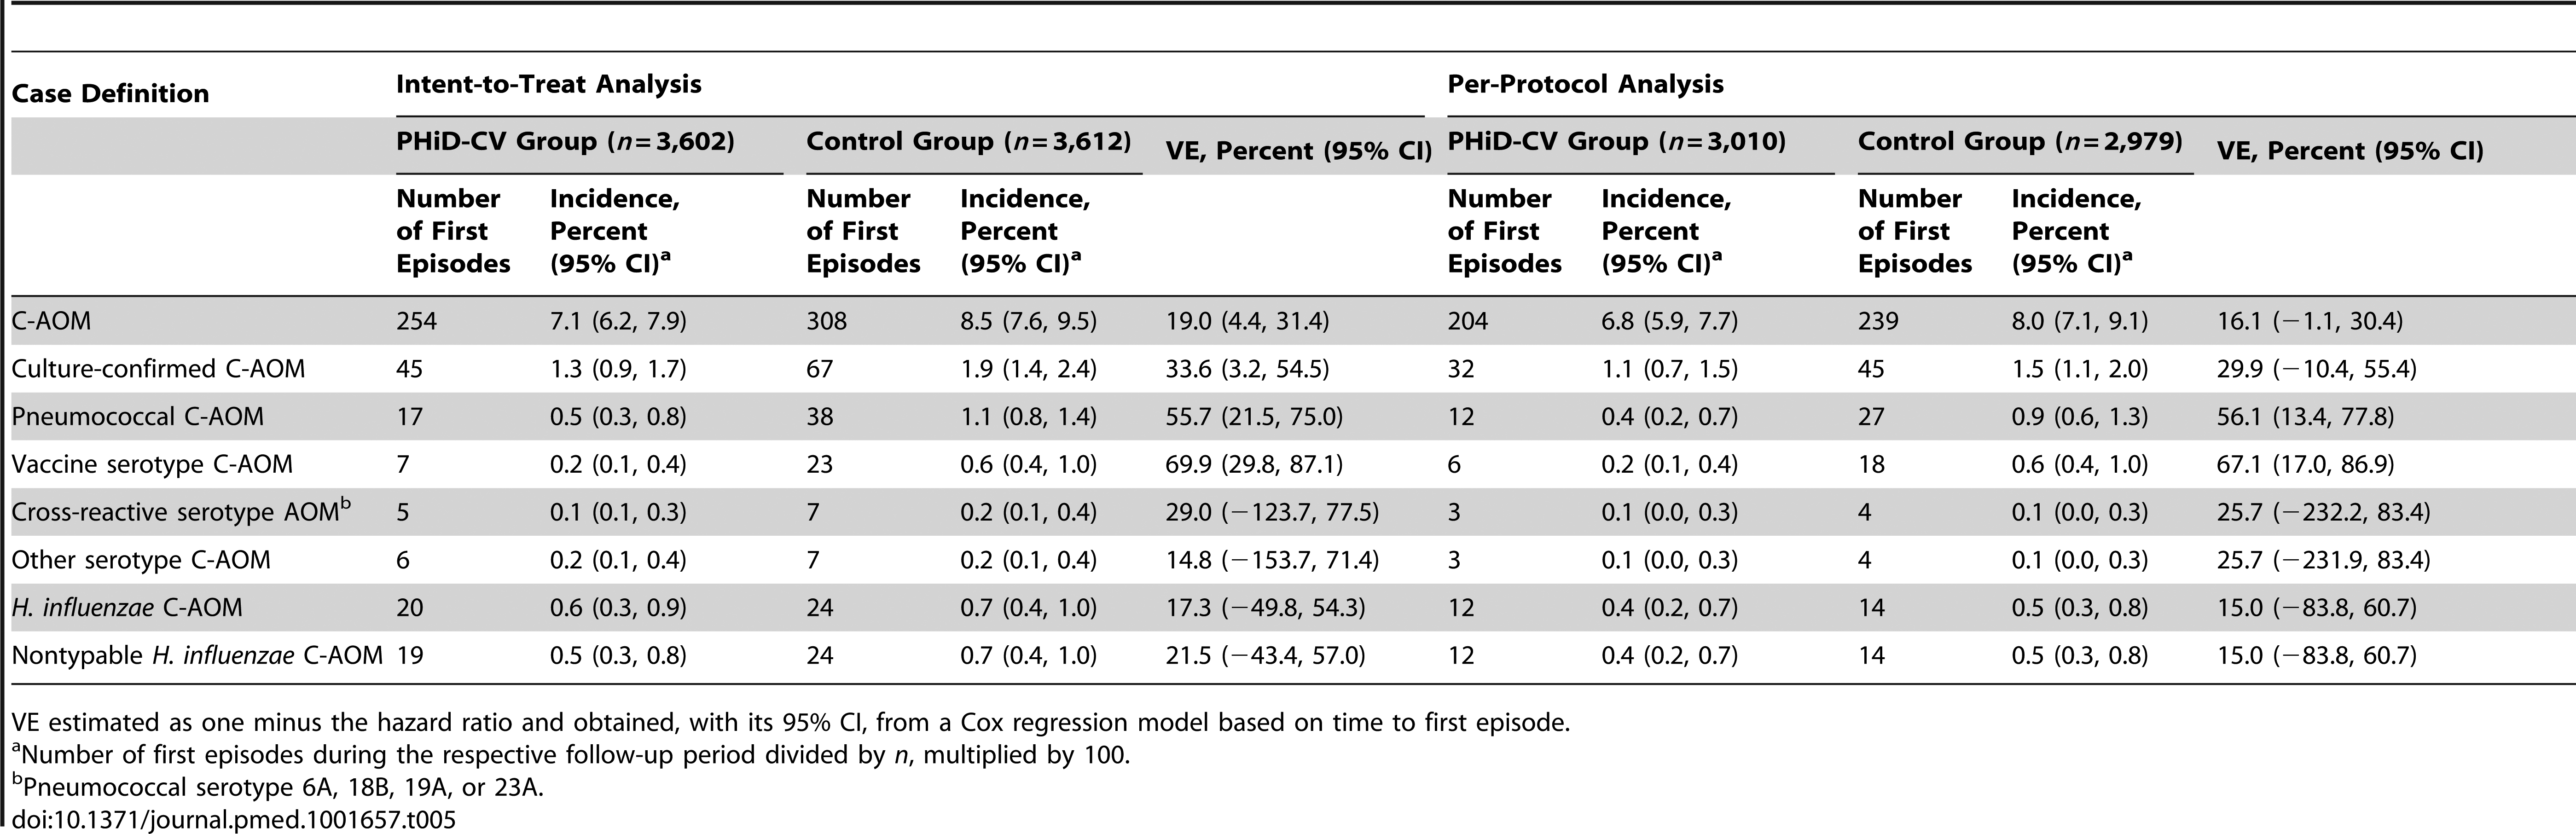 Efficacy of PHiD-CV against first acute otitis media episodes (end-of-study analysis).